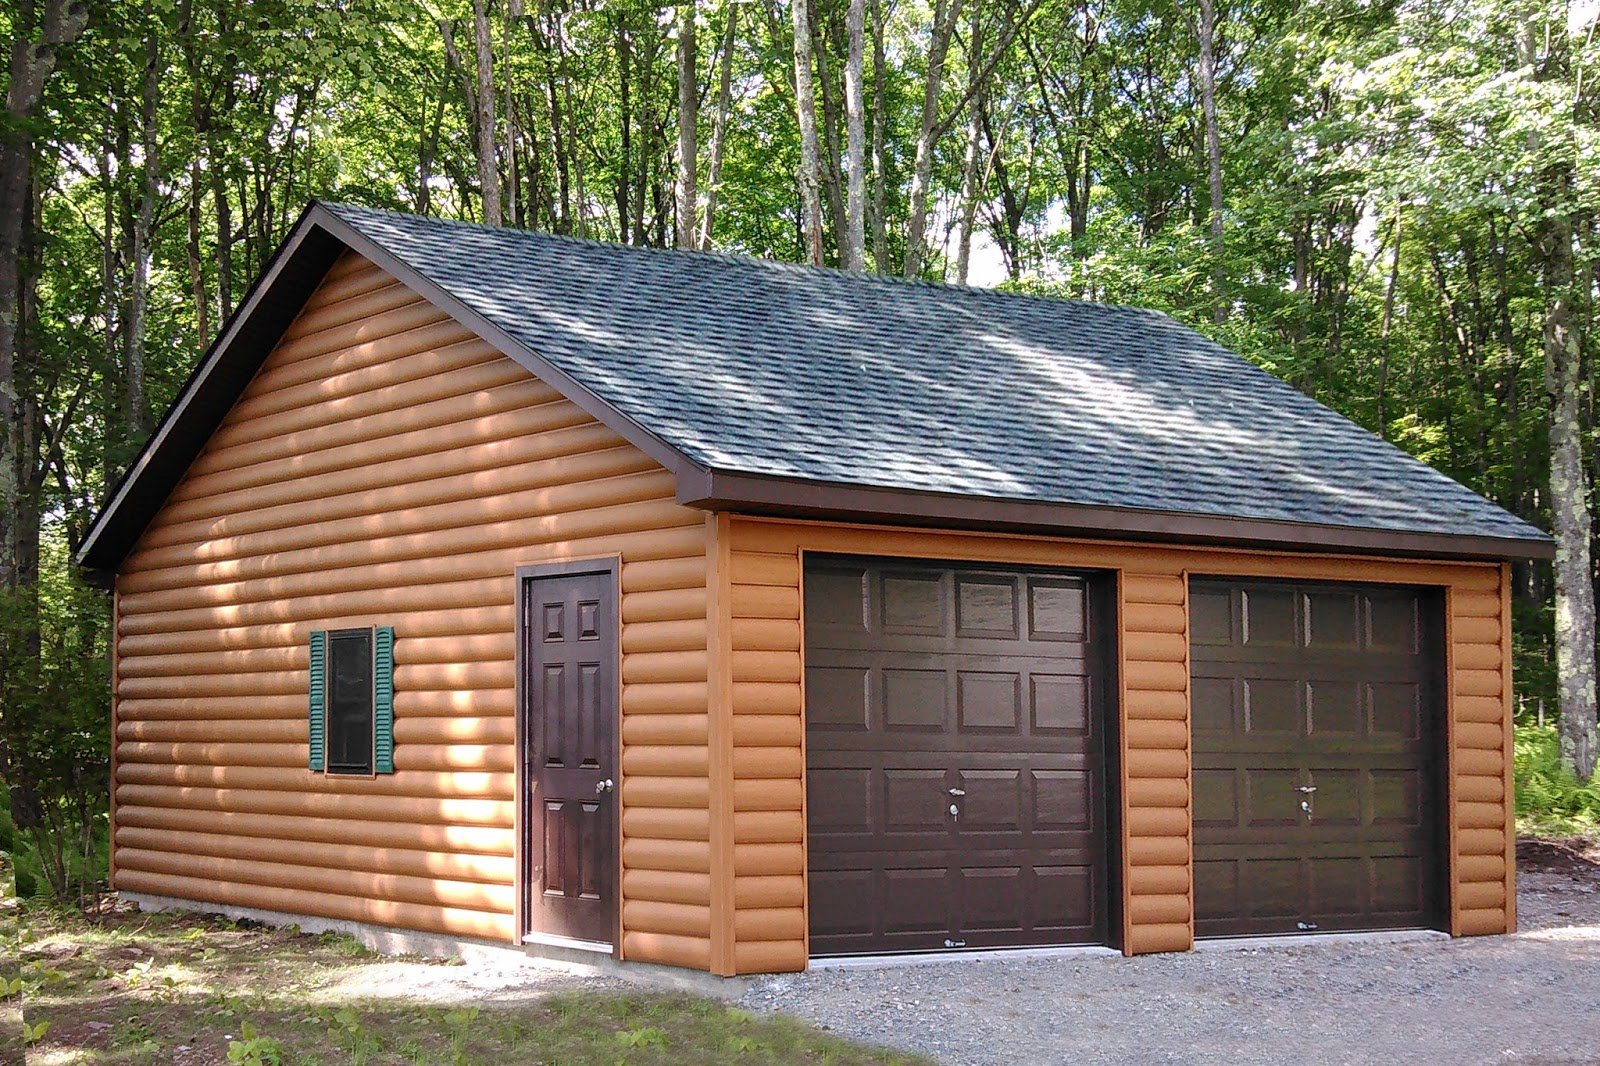 Prefab car garages for sale in pa nj ny ct de md va for One car garage with carport